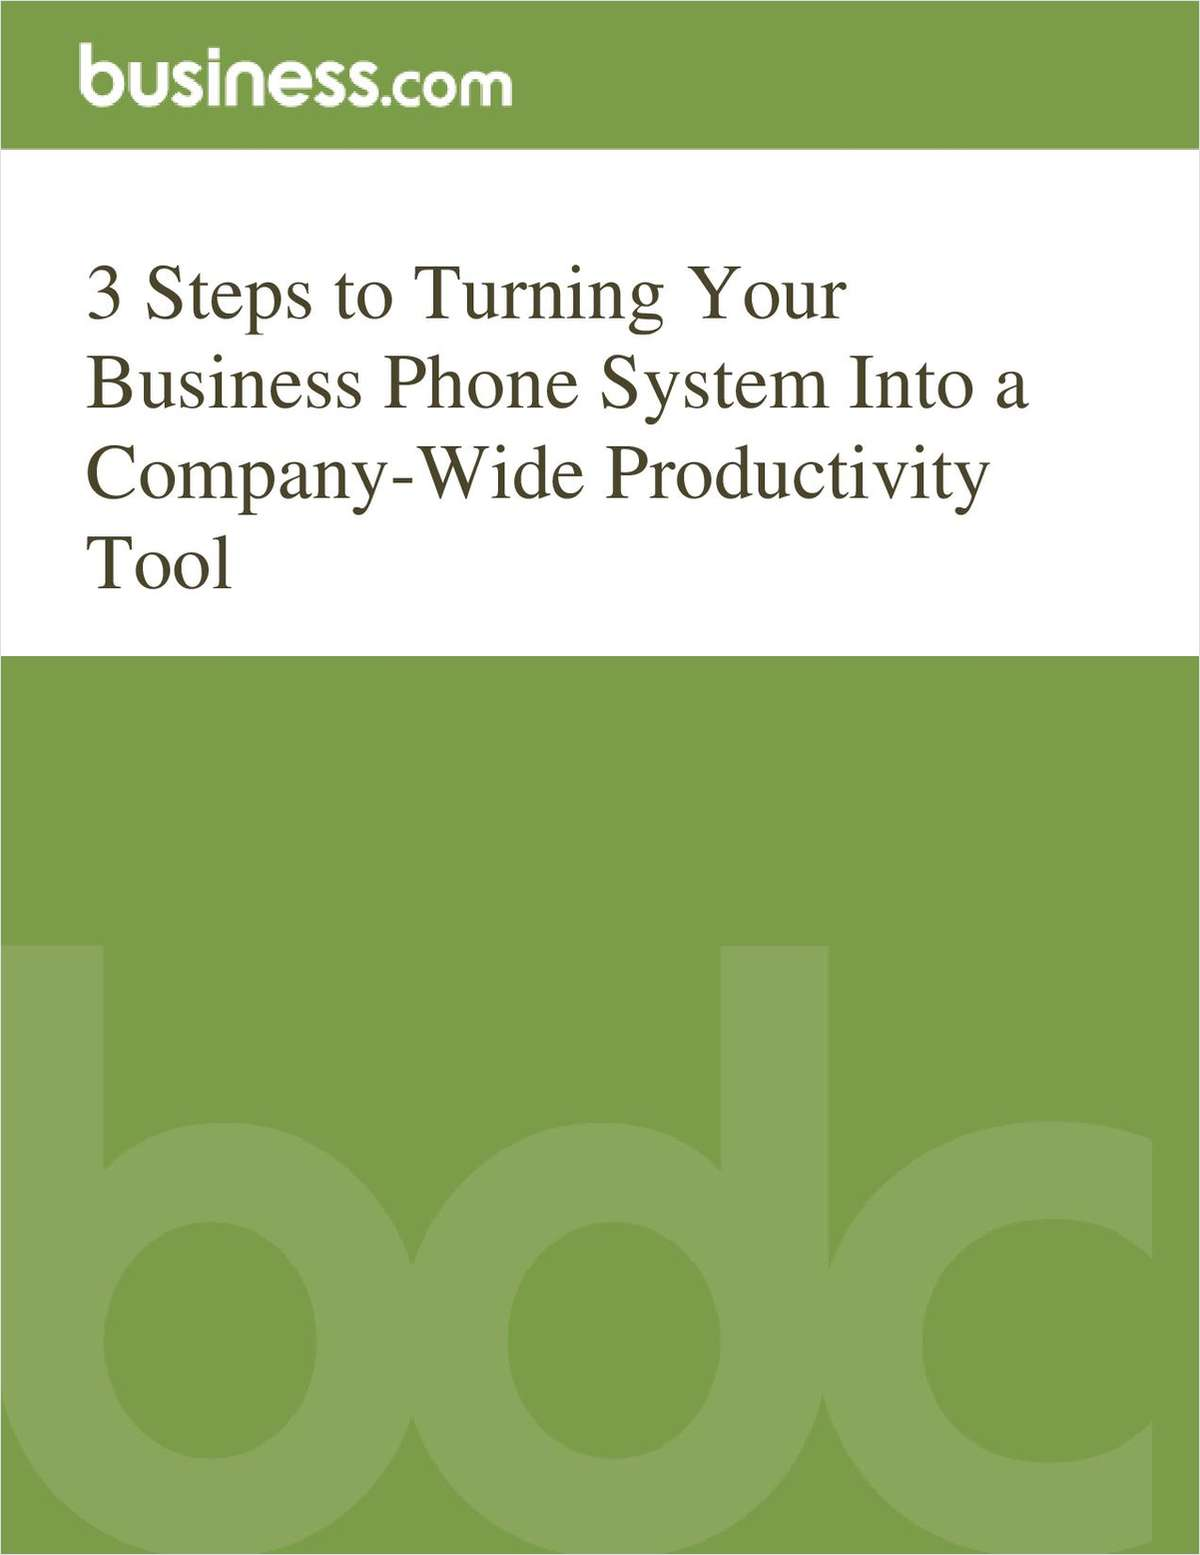 3 Steps to Turning Your Business Phone System Into a Company-Wide Productivity Tool